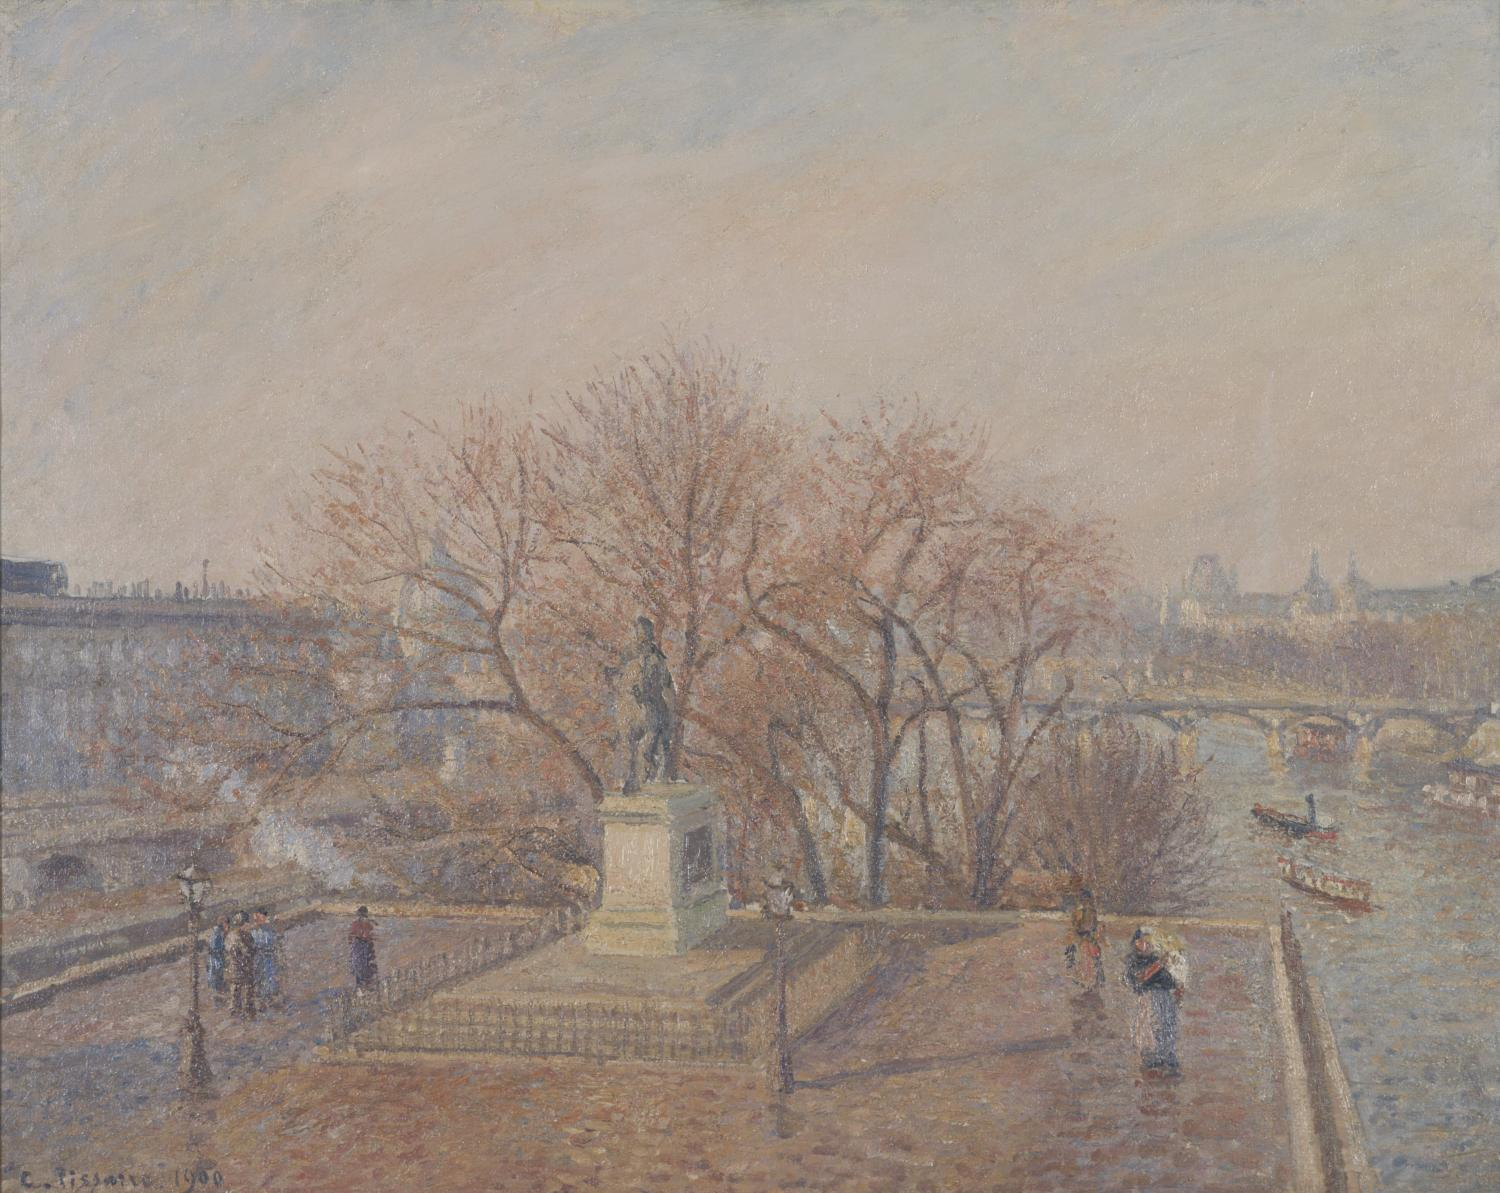 Camille Pissarro, Statue d'Henri IV, matin, soleil d'hiver (Statue of Henri-IV, Morning, Winter Sunlight), 1900. Oil on canvas, 29 x 36 3/4 inches. Gift of Mr. and Mrs. Merle J. Trees 1951-1-2